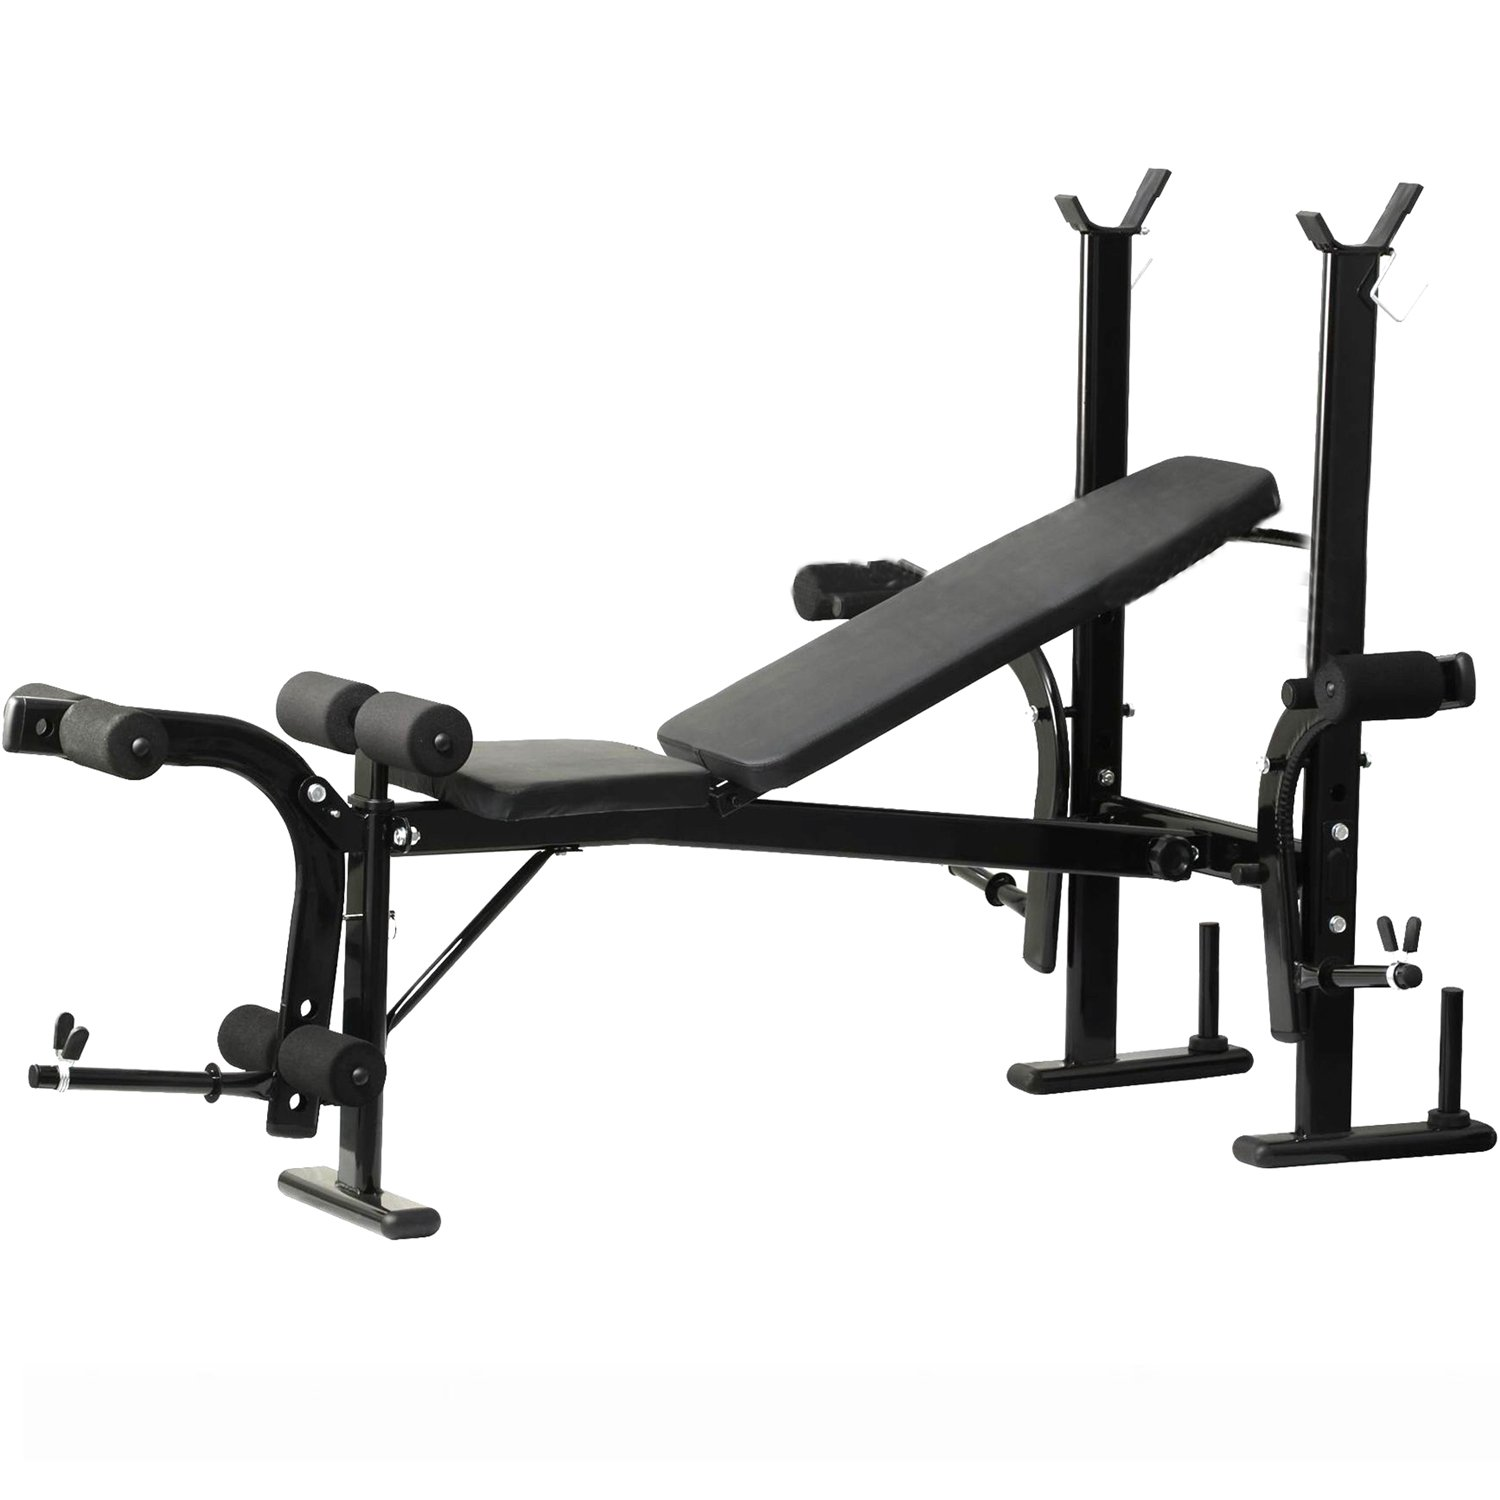 7 In 1 Barbell Rack Weight Bench